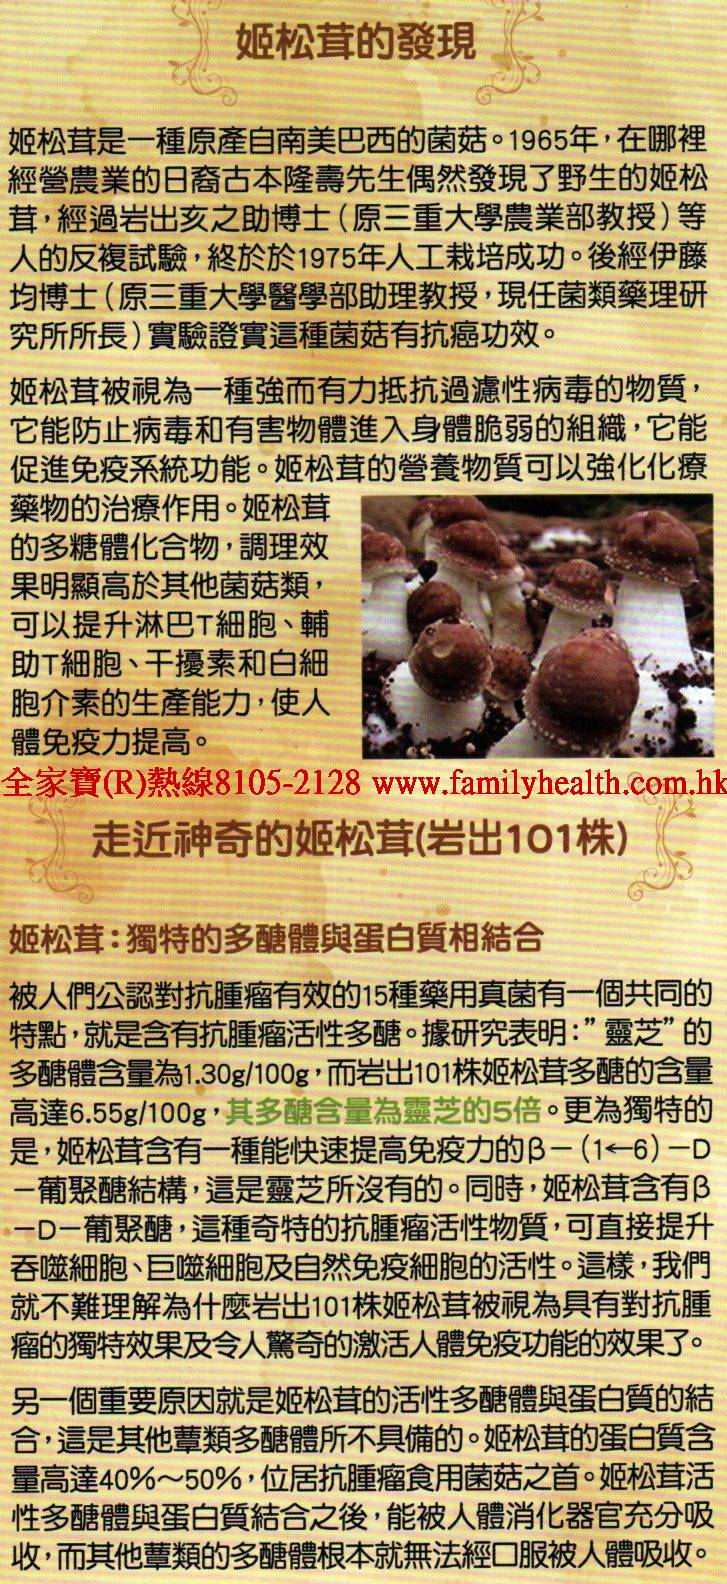 http://www.familyhealth.com.hk/files/full/1036_1.jpg